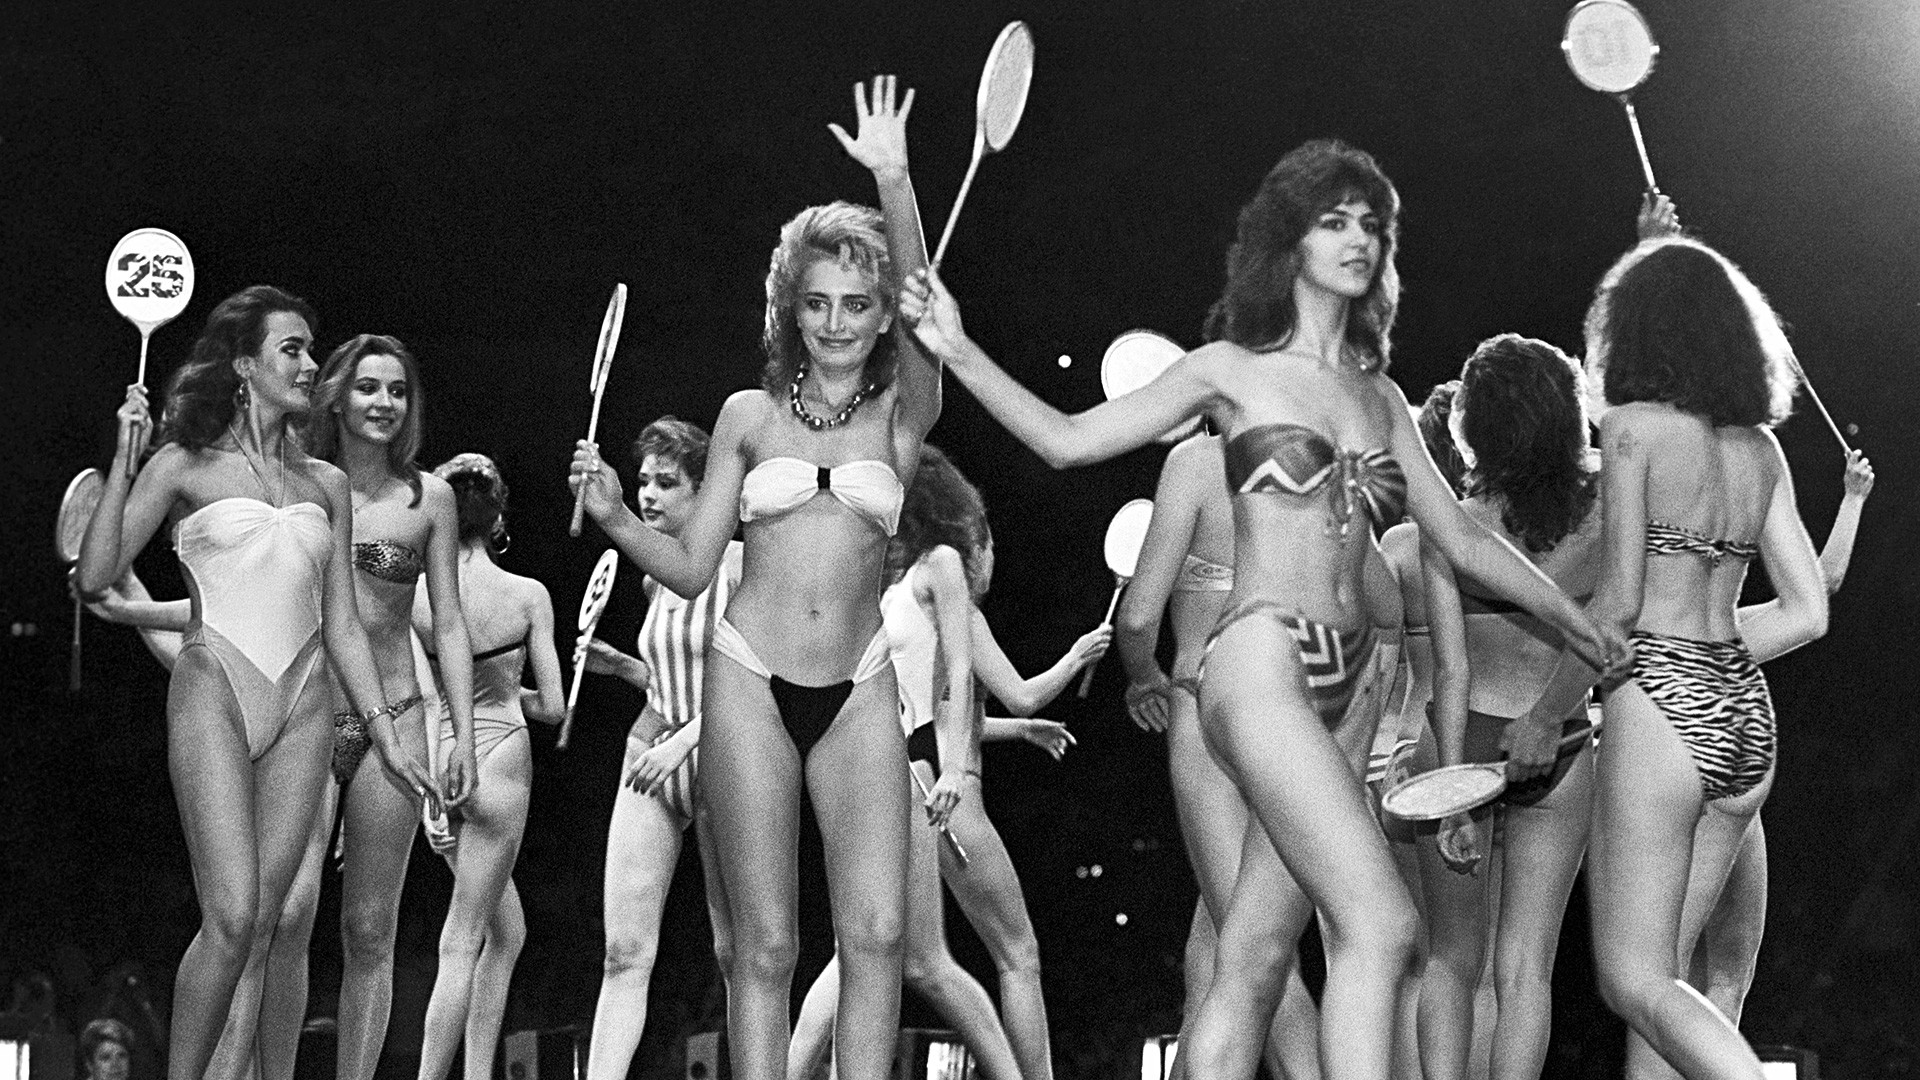 Participants on the runway during swimsuit modeling.